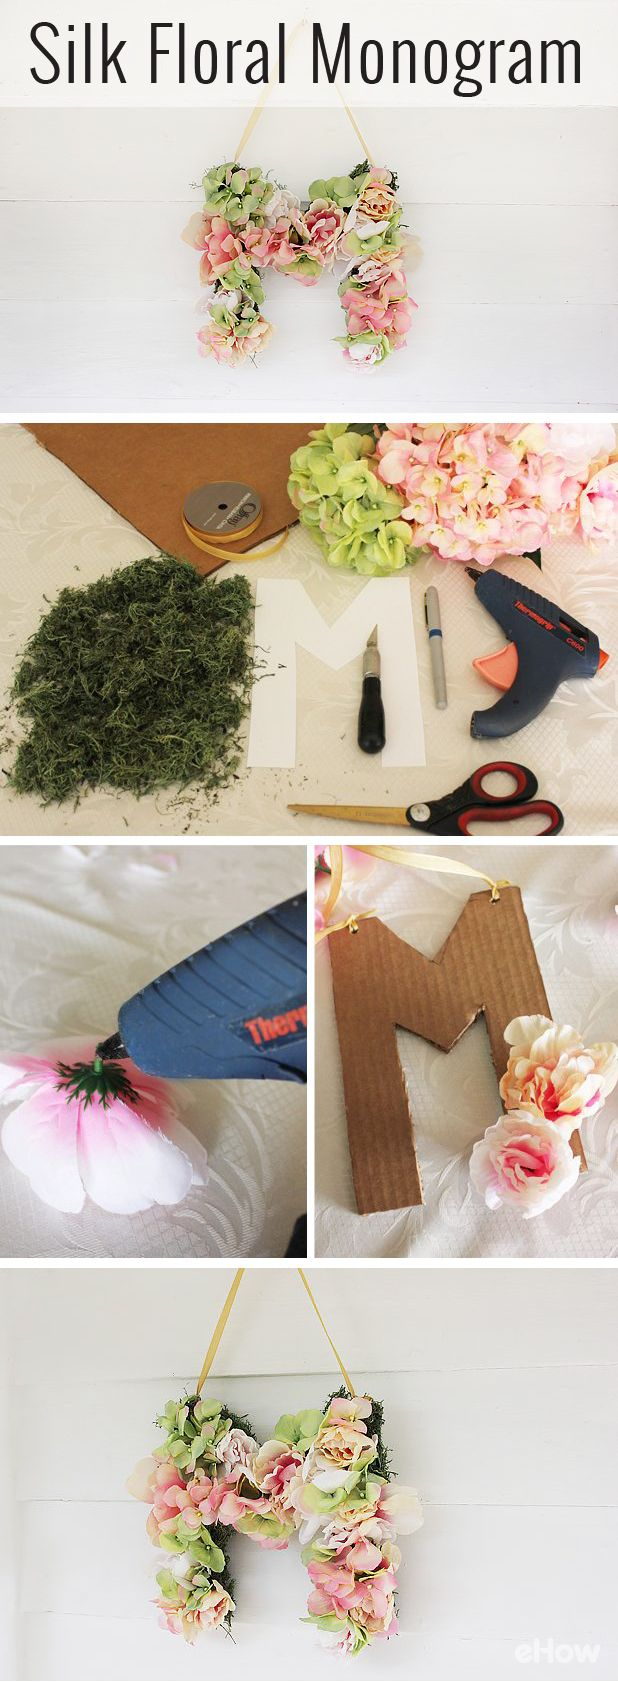 Perfect for weddings, baby showers and bridal showers, make your own silk floral monogram instead of spending tons of extra money on one from the florist! http://www.ehow.com/info_12340512_diy-silk-floral-monogram.html?utm_source=pinterest.com&utm_medium=referral&utm_content=inline&utm_campaign=fanpage